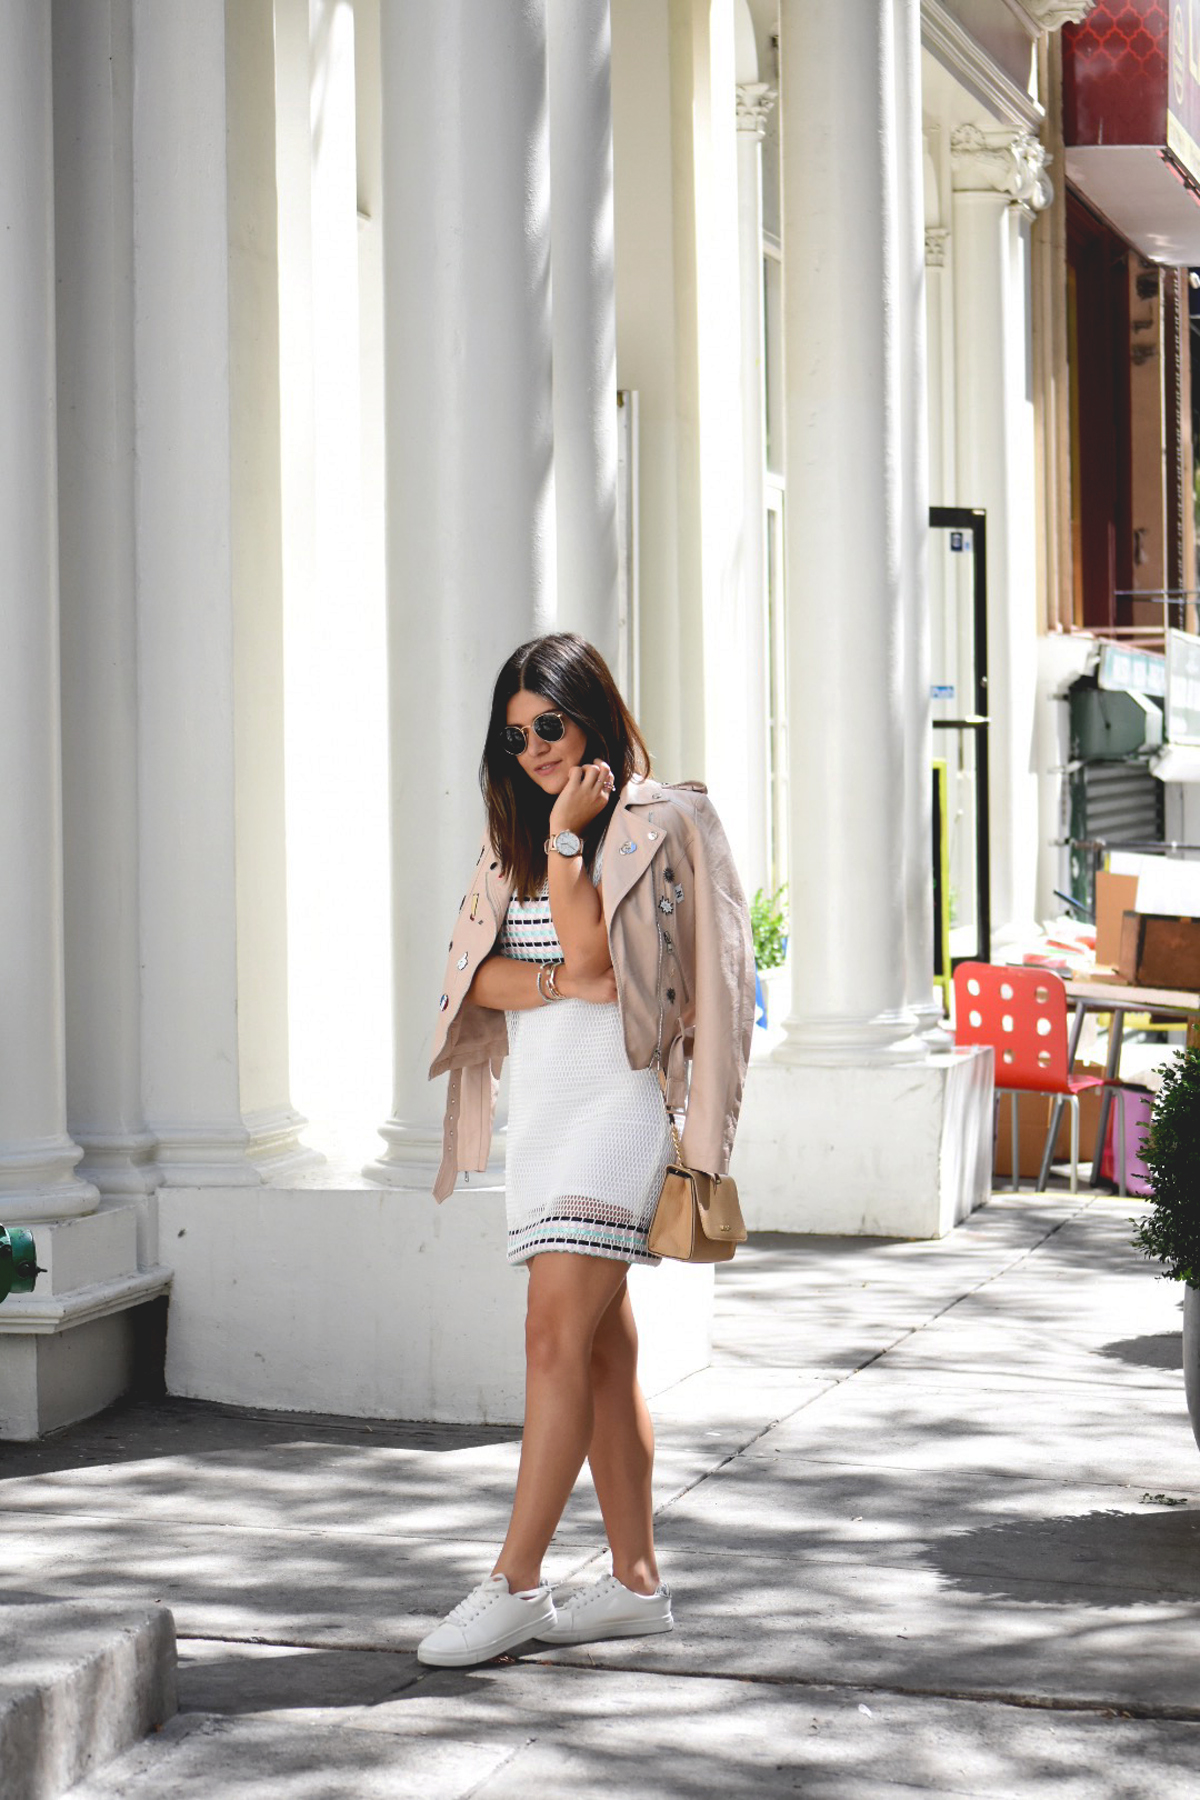 Carolina Hellal of Chic Talk during NYFW wearing a Dezzal faux leather jacket, tobi mesh dress, and h&m white sneakers